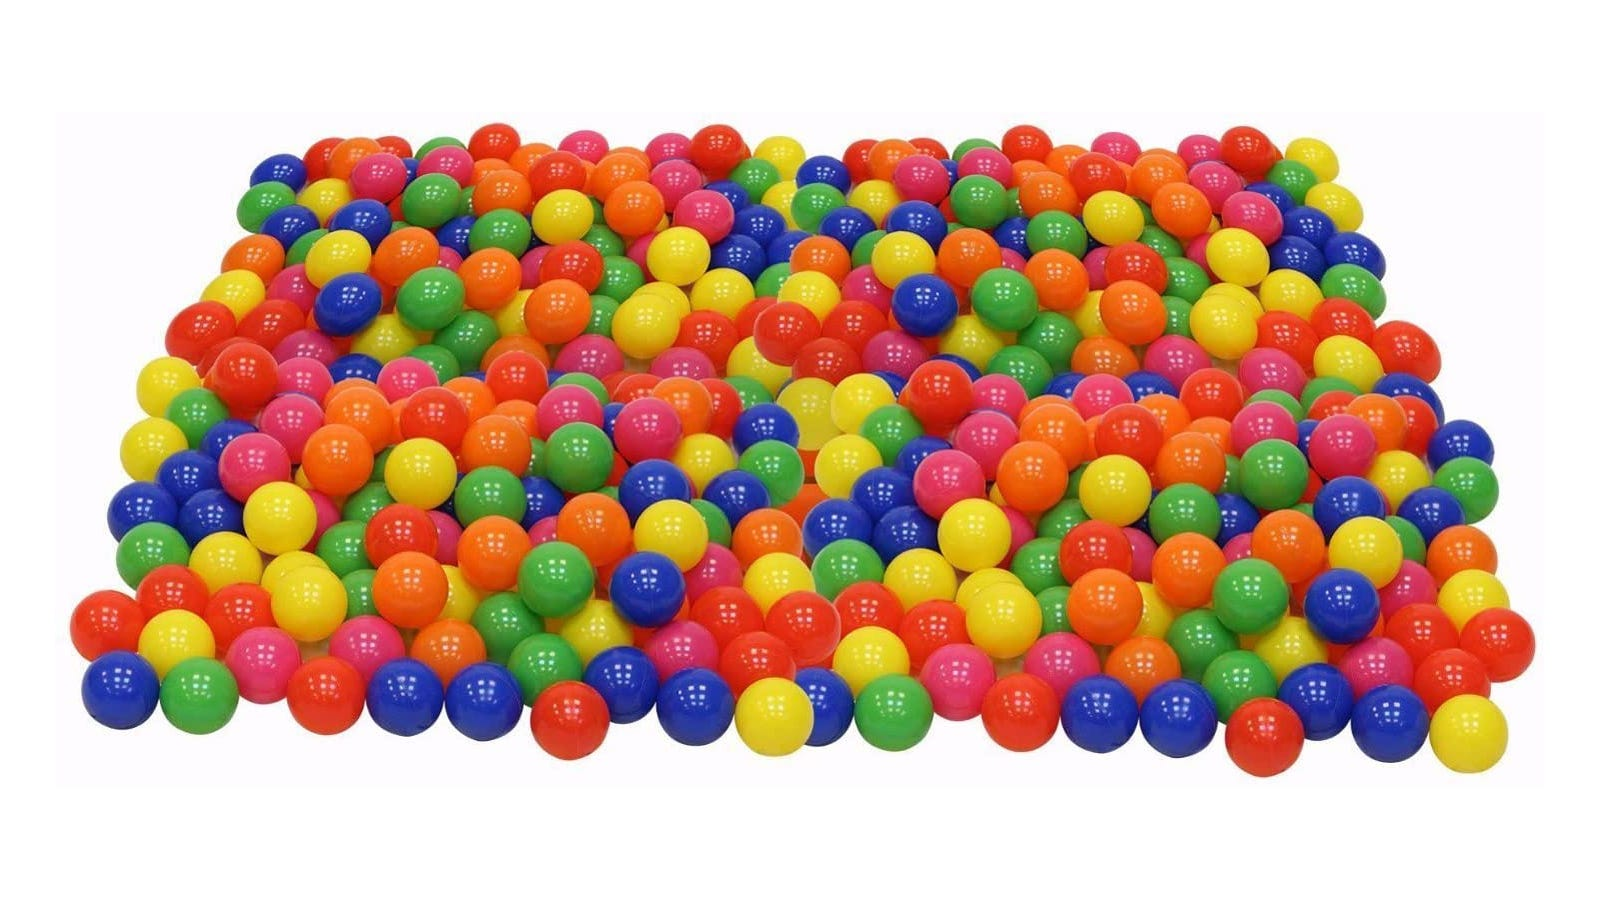 large pile of yellow, green, blue, orange, red, and pink plastic balls